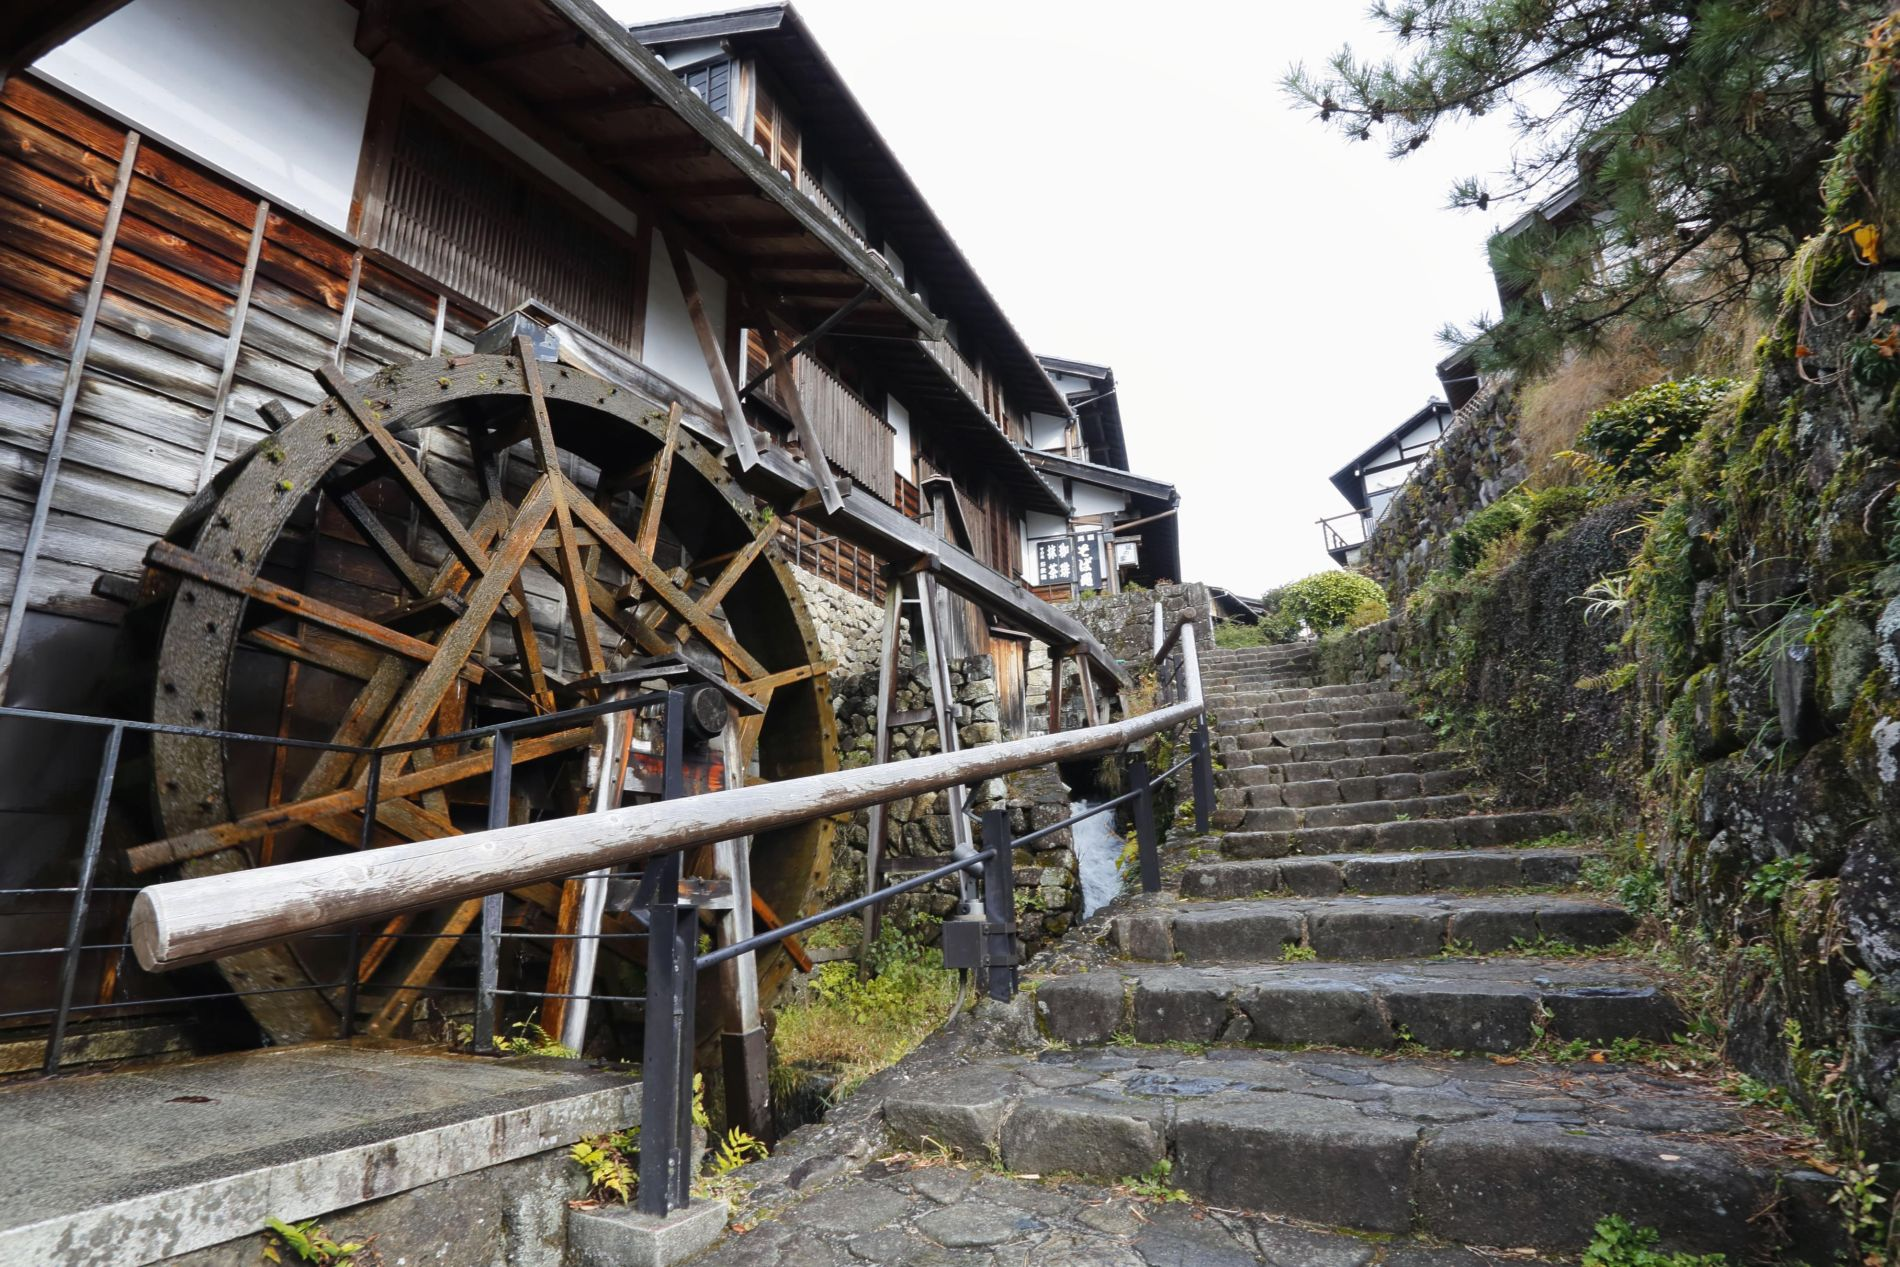 Edo Era Post Towns Charm Foreign Hikers from Magome to Tsumago 003